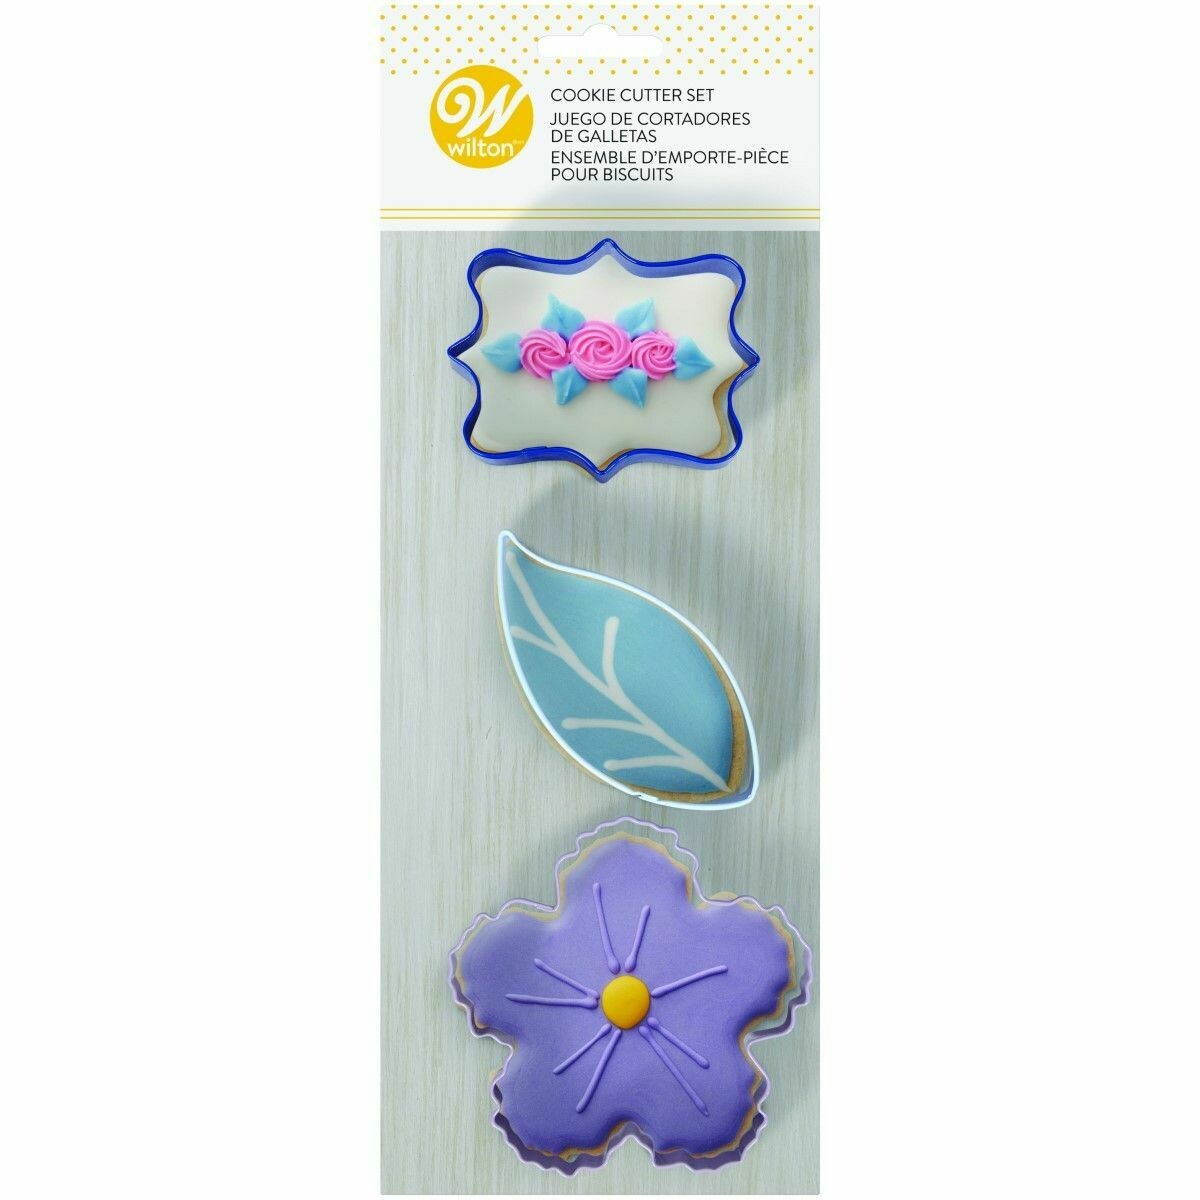 Wilton Cookie Cutter Set of 3 -FLORAL THEME -PLAQUE, LEAF and FLOWER - Σετ 3τεμ Κουπ πατ με θέμα Λουλούδια